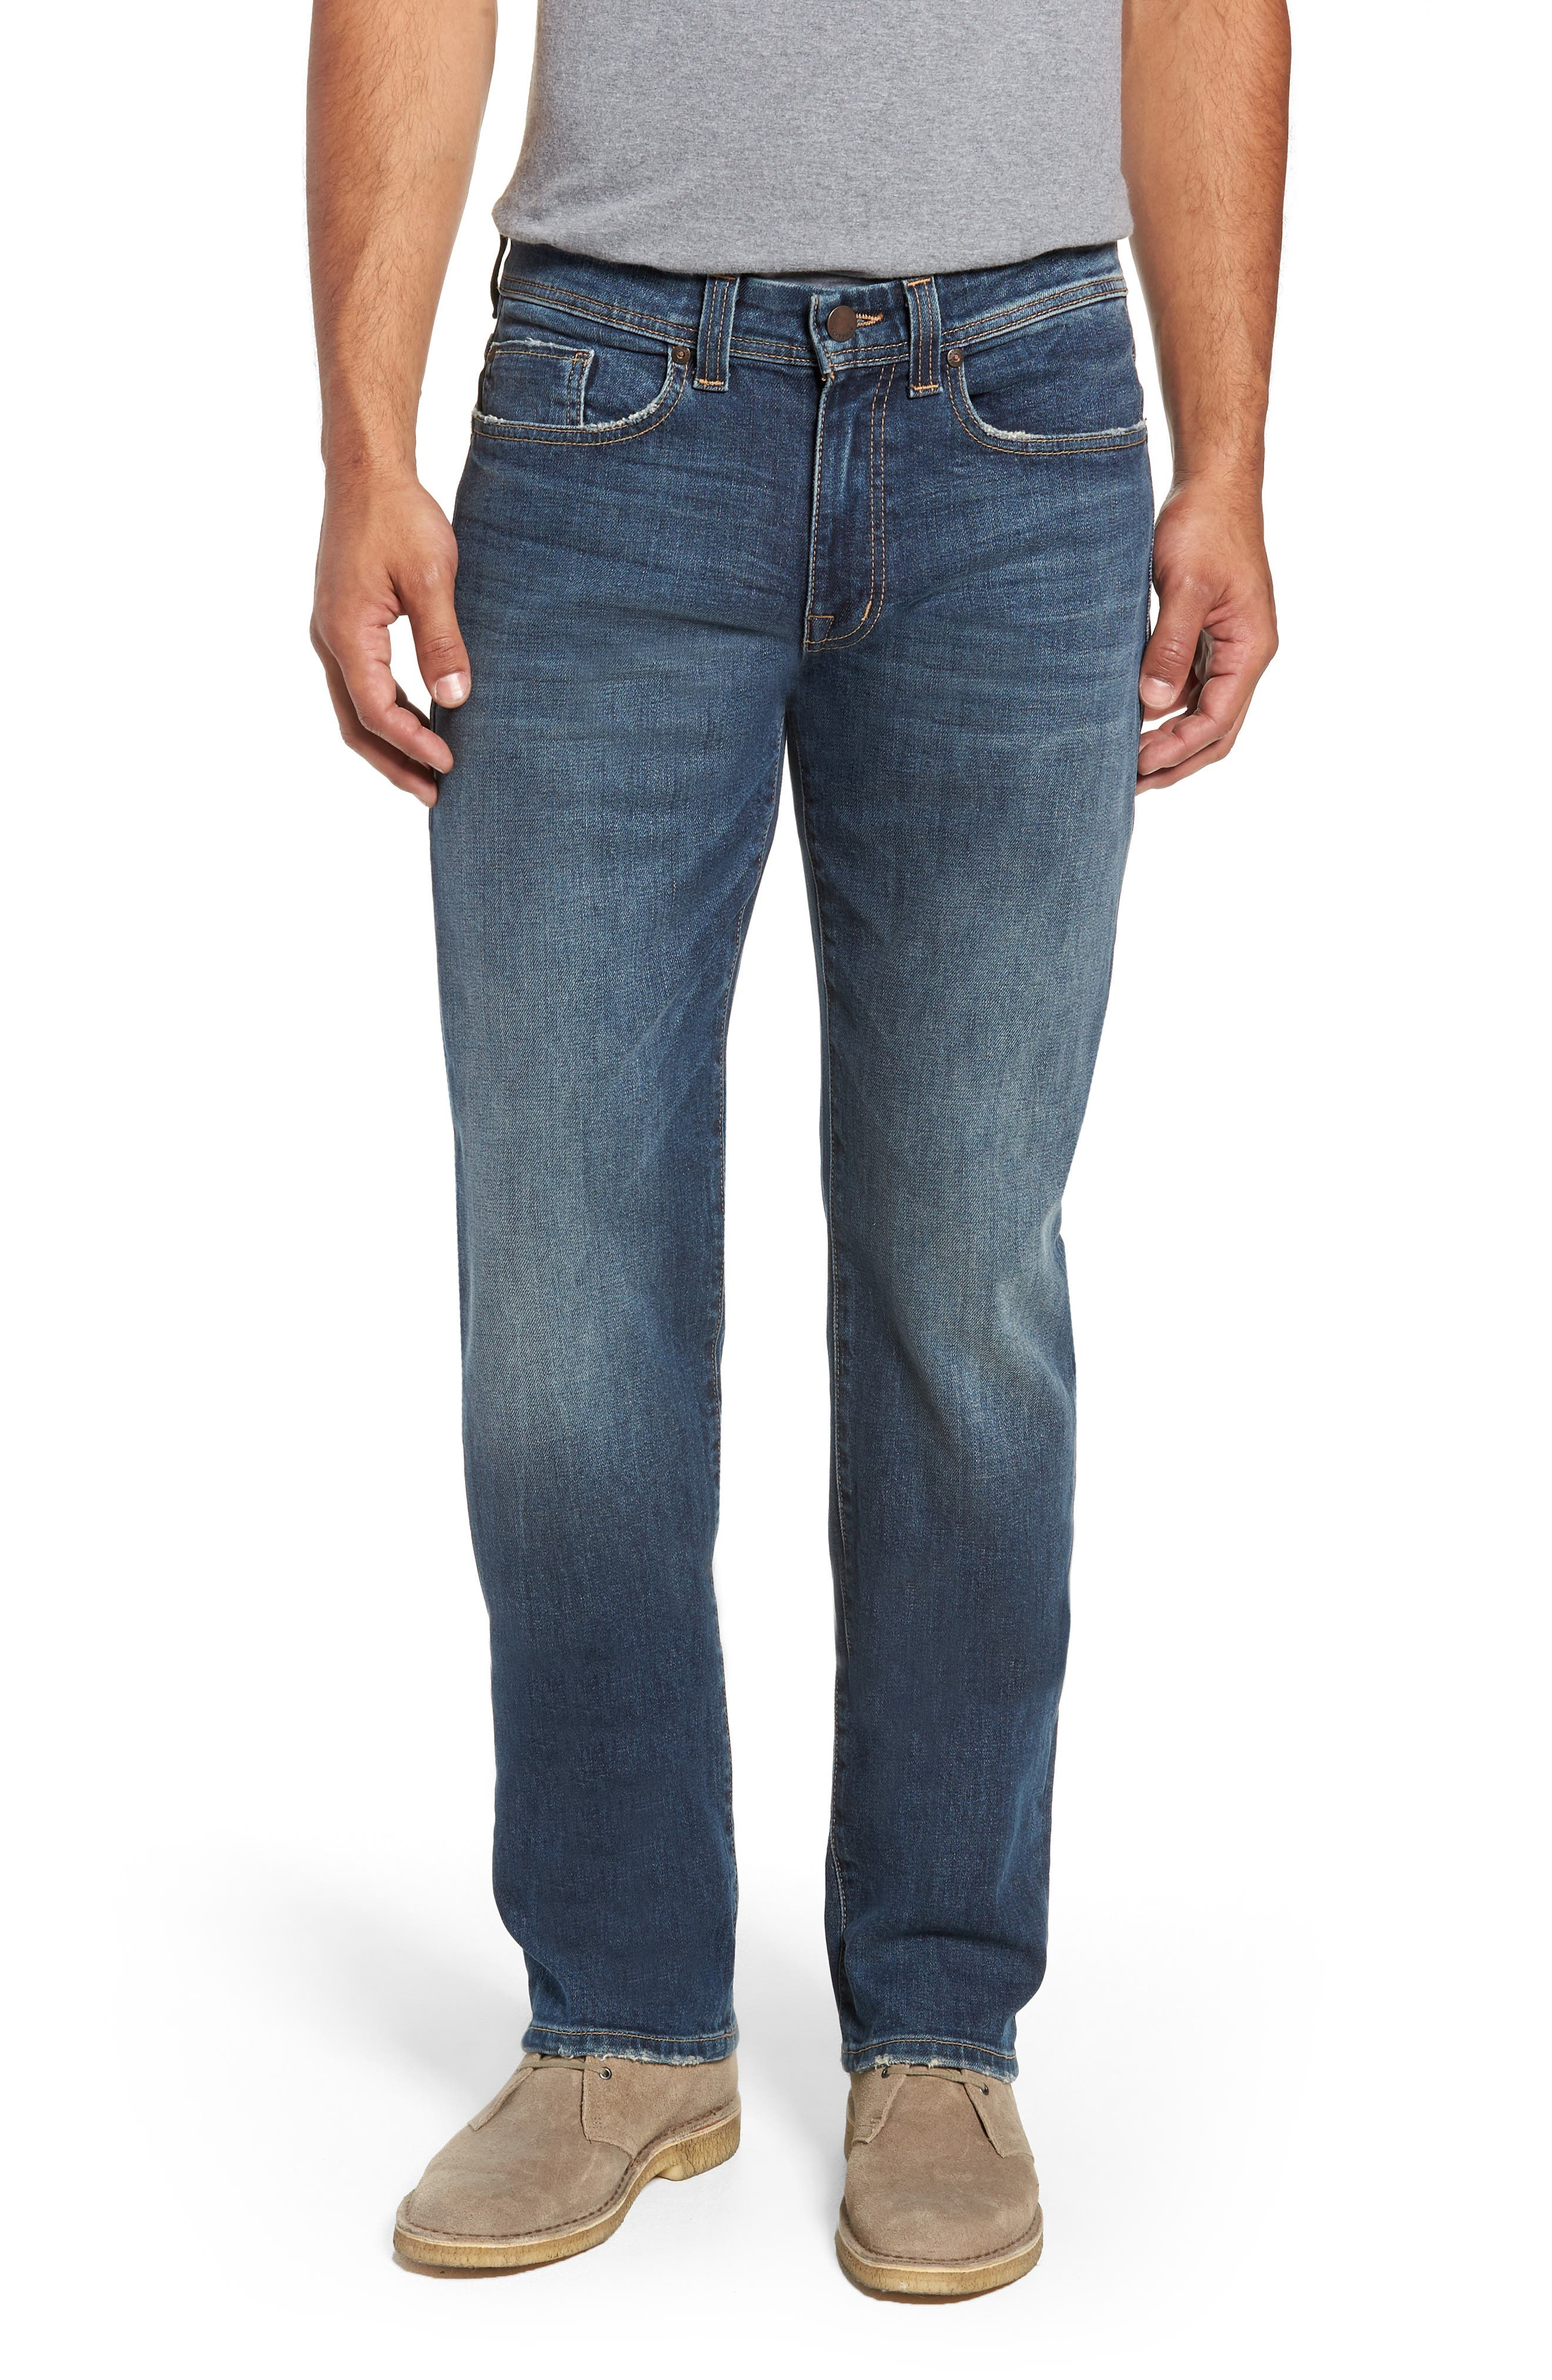 50-11 Relaxed Fit Jeans,                             Main thumbnail 1, color,                             GTO VINTAGE